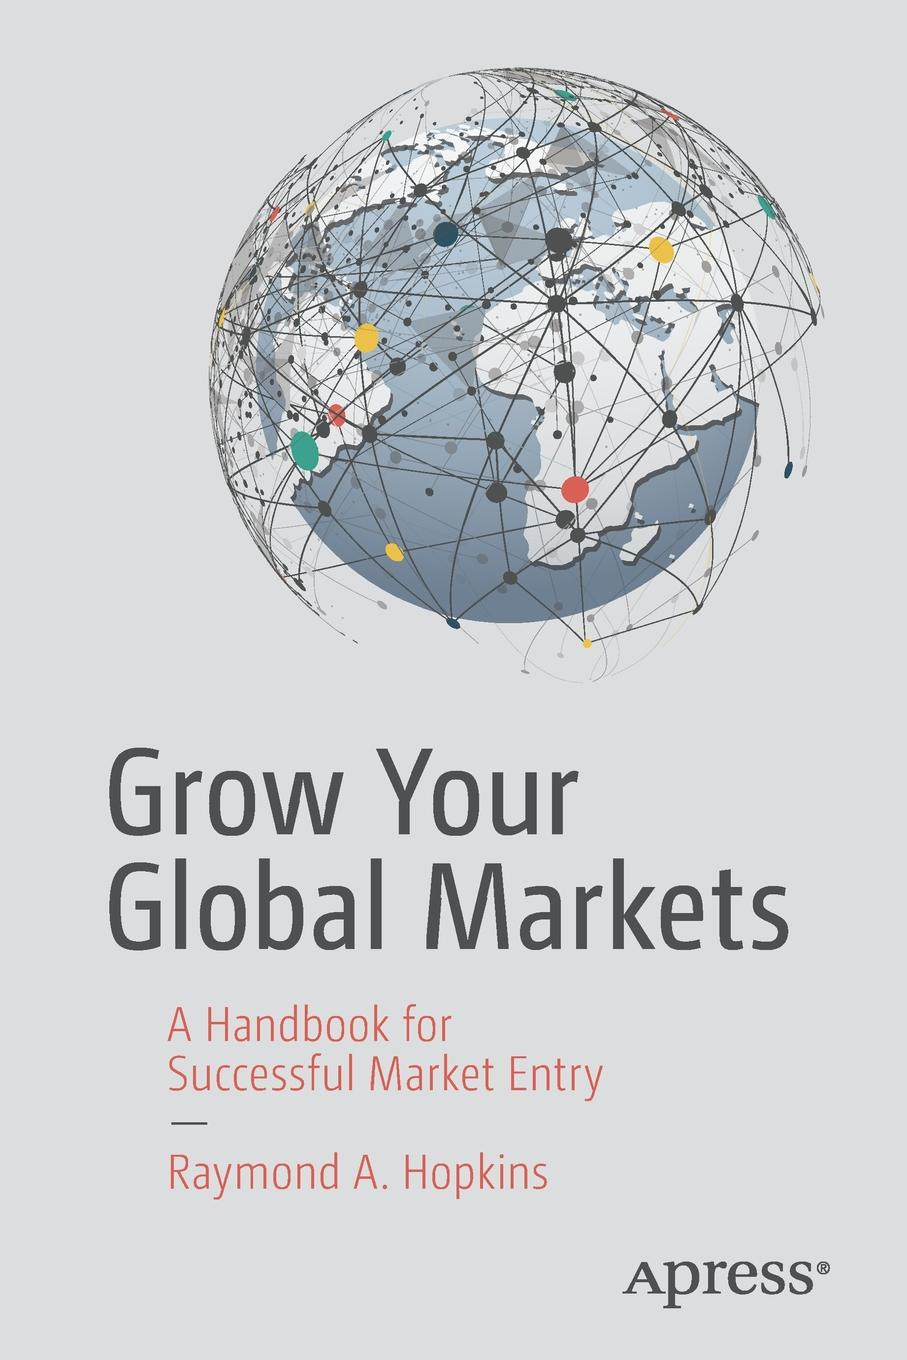 Raymond A. Hopkins Grow Your Global Markets. A Handbook for Successful Market Entry door entry systems